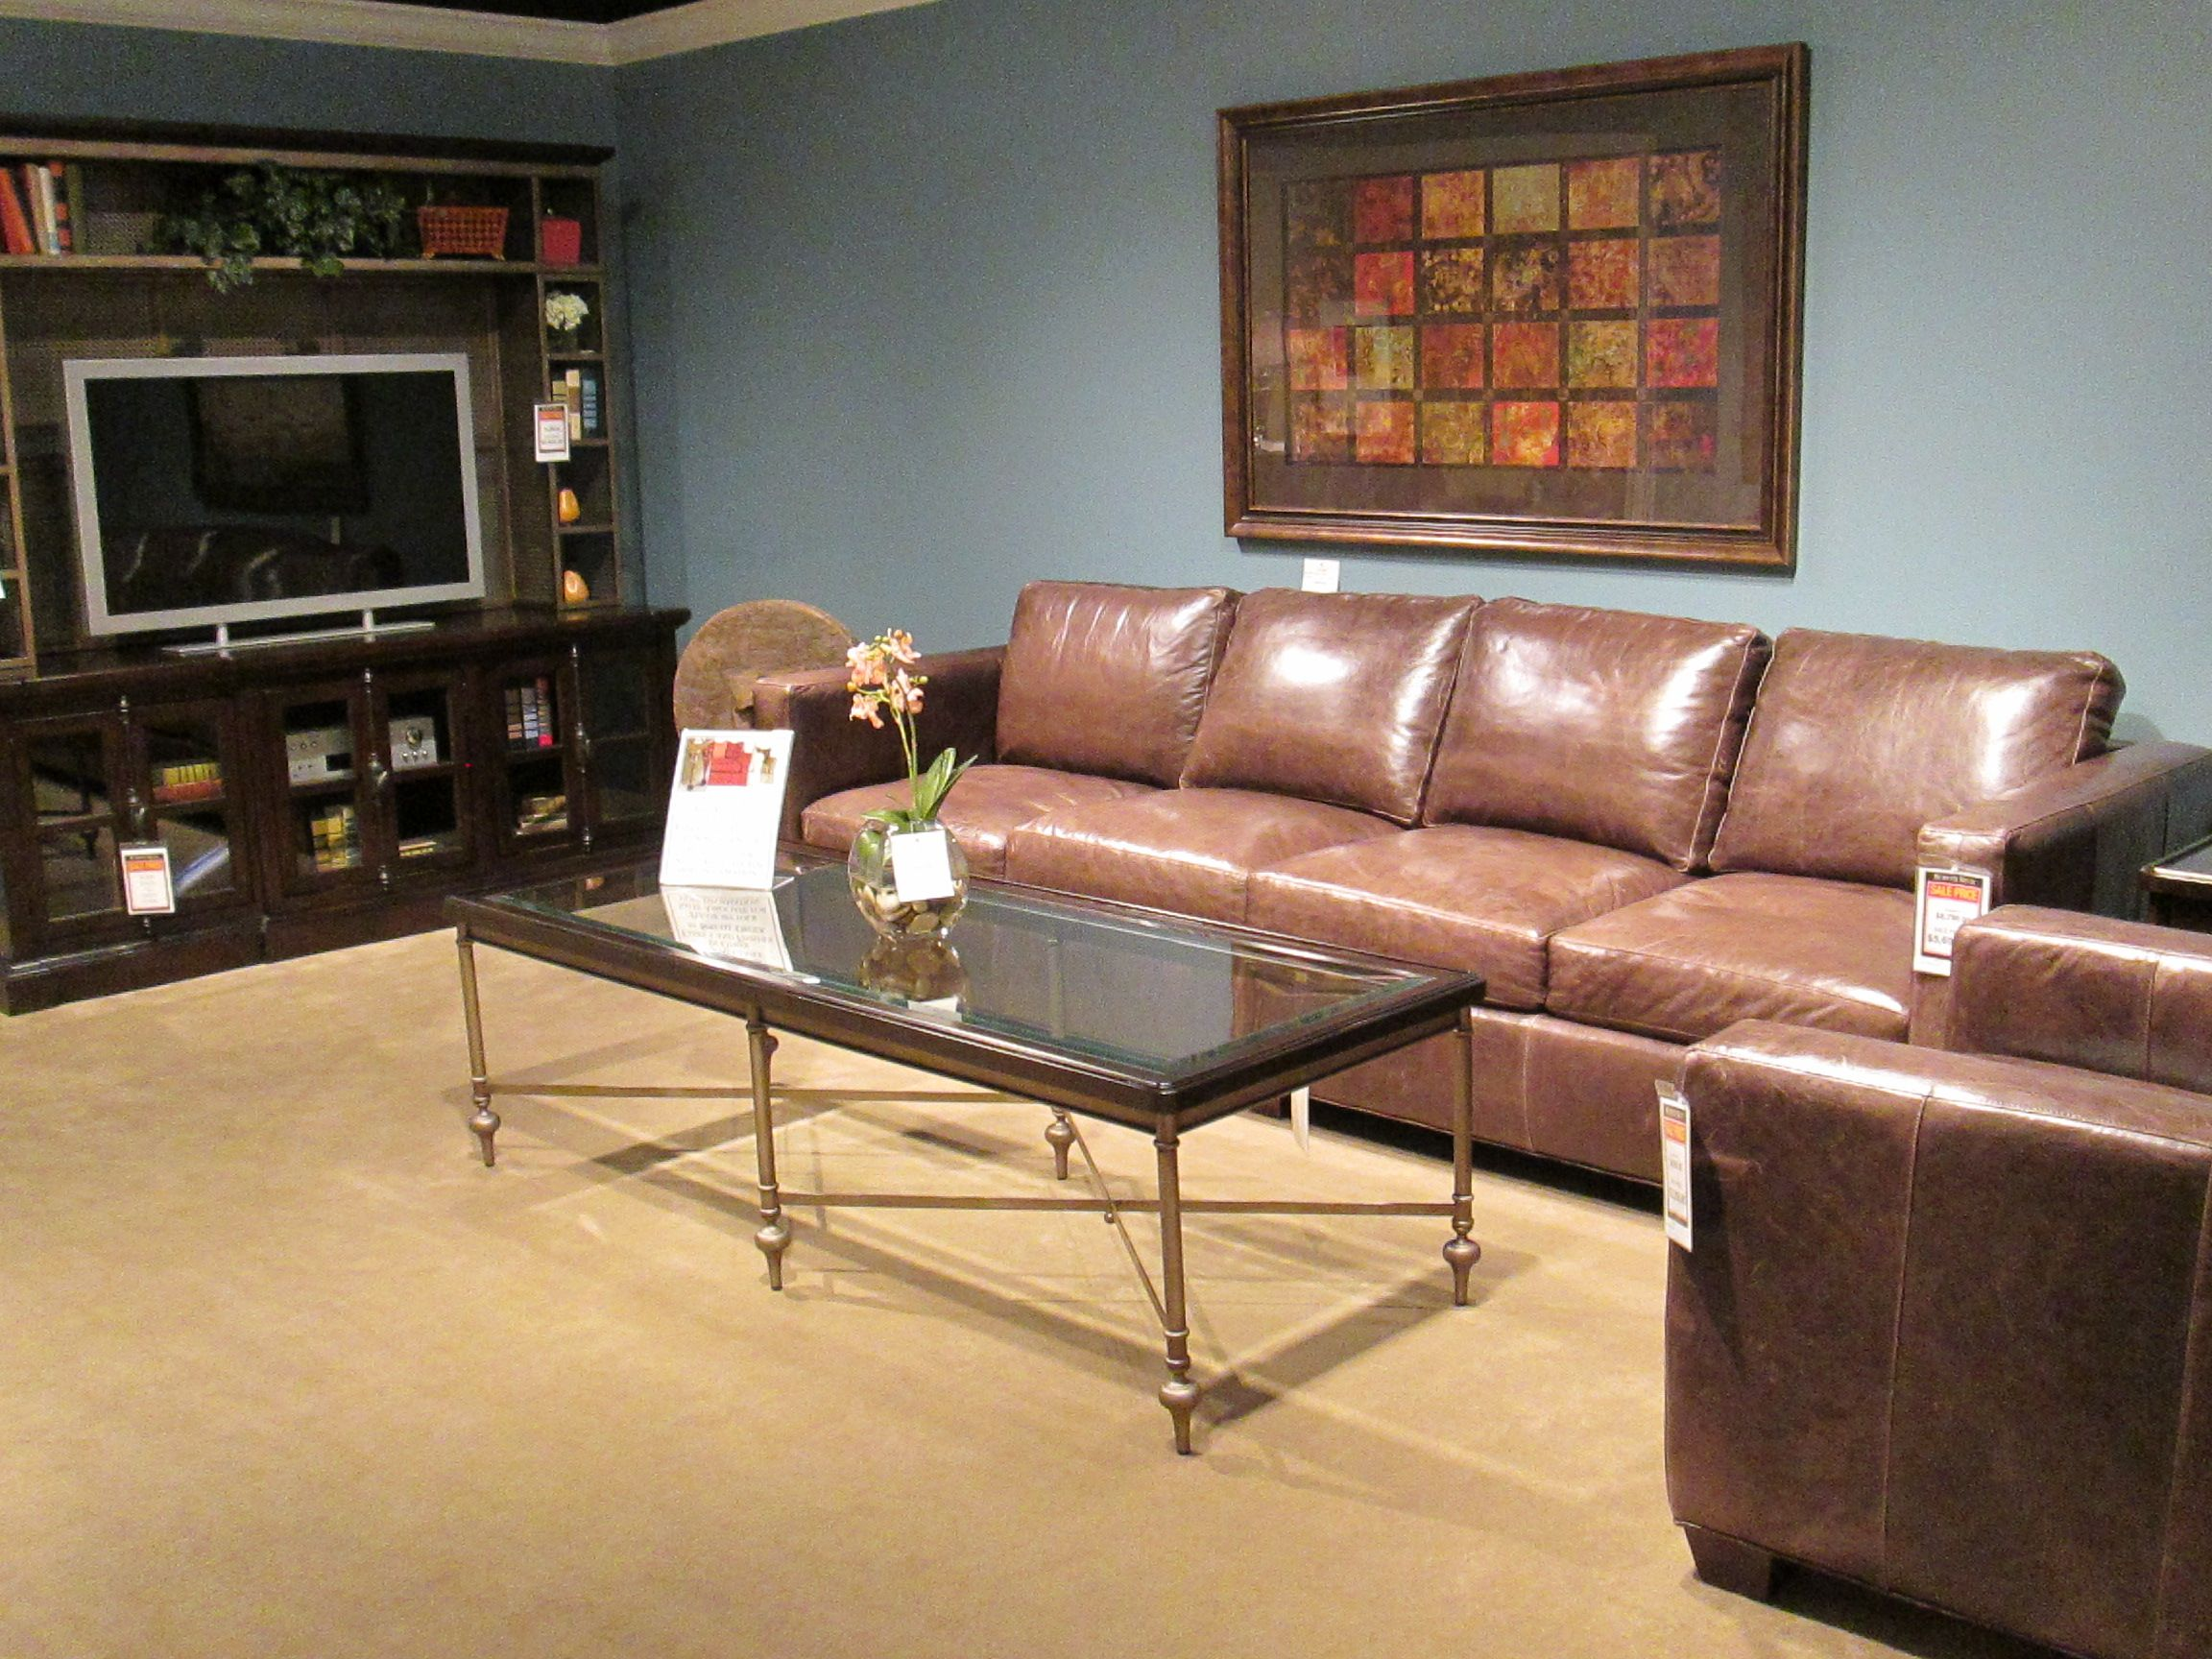 Check Out This Extra Long 4 Seat Cushion Leather Sofa